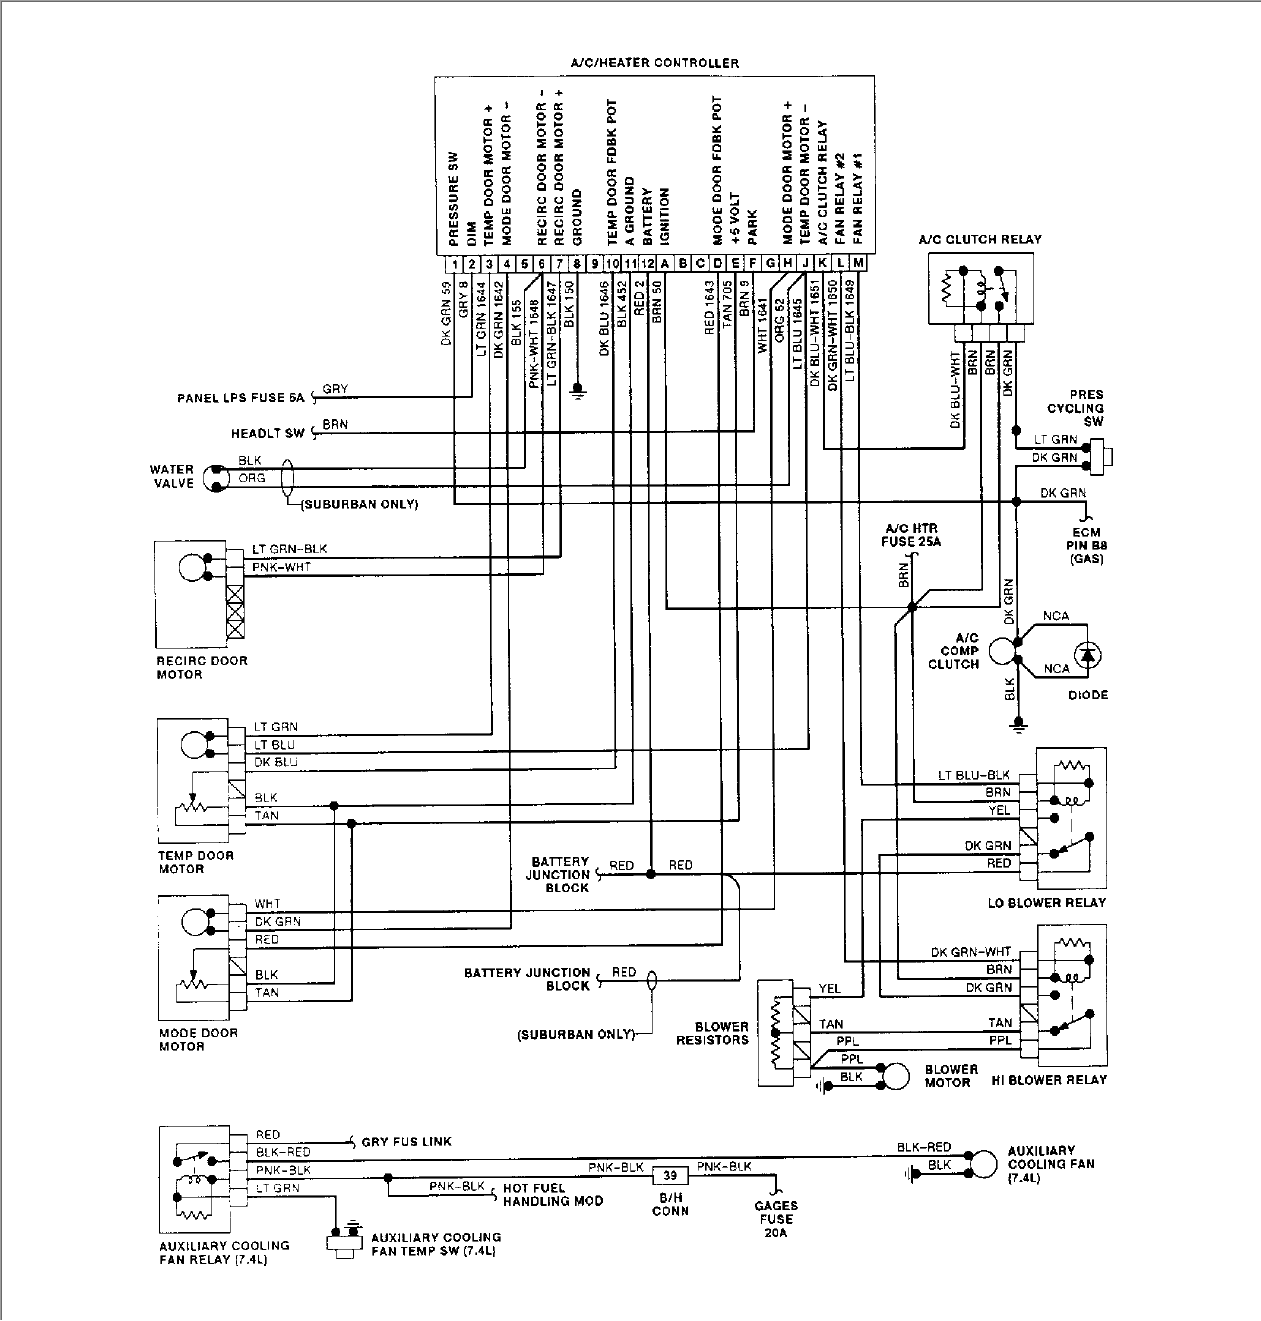 Wiring Diagram For 1992 Chevy Silverado Pickup Harness Daily Update Truck The 1500